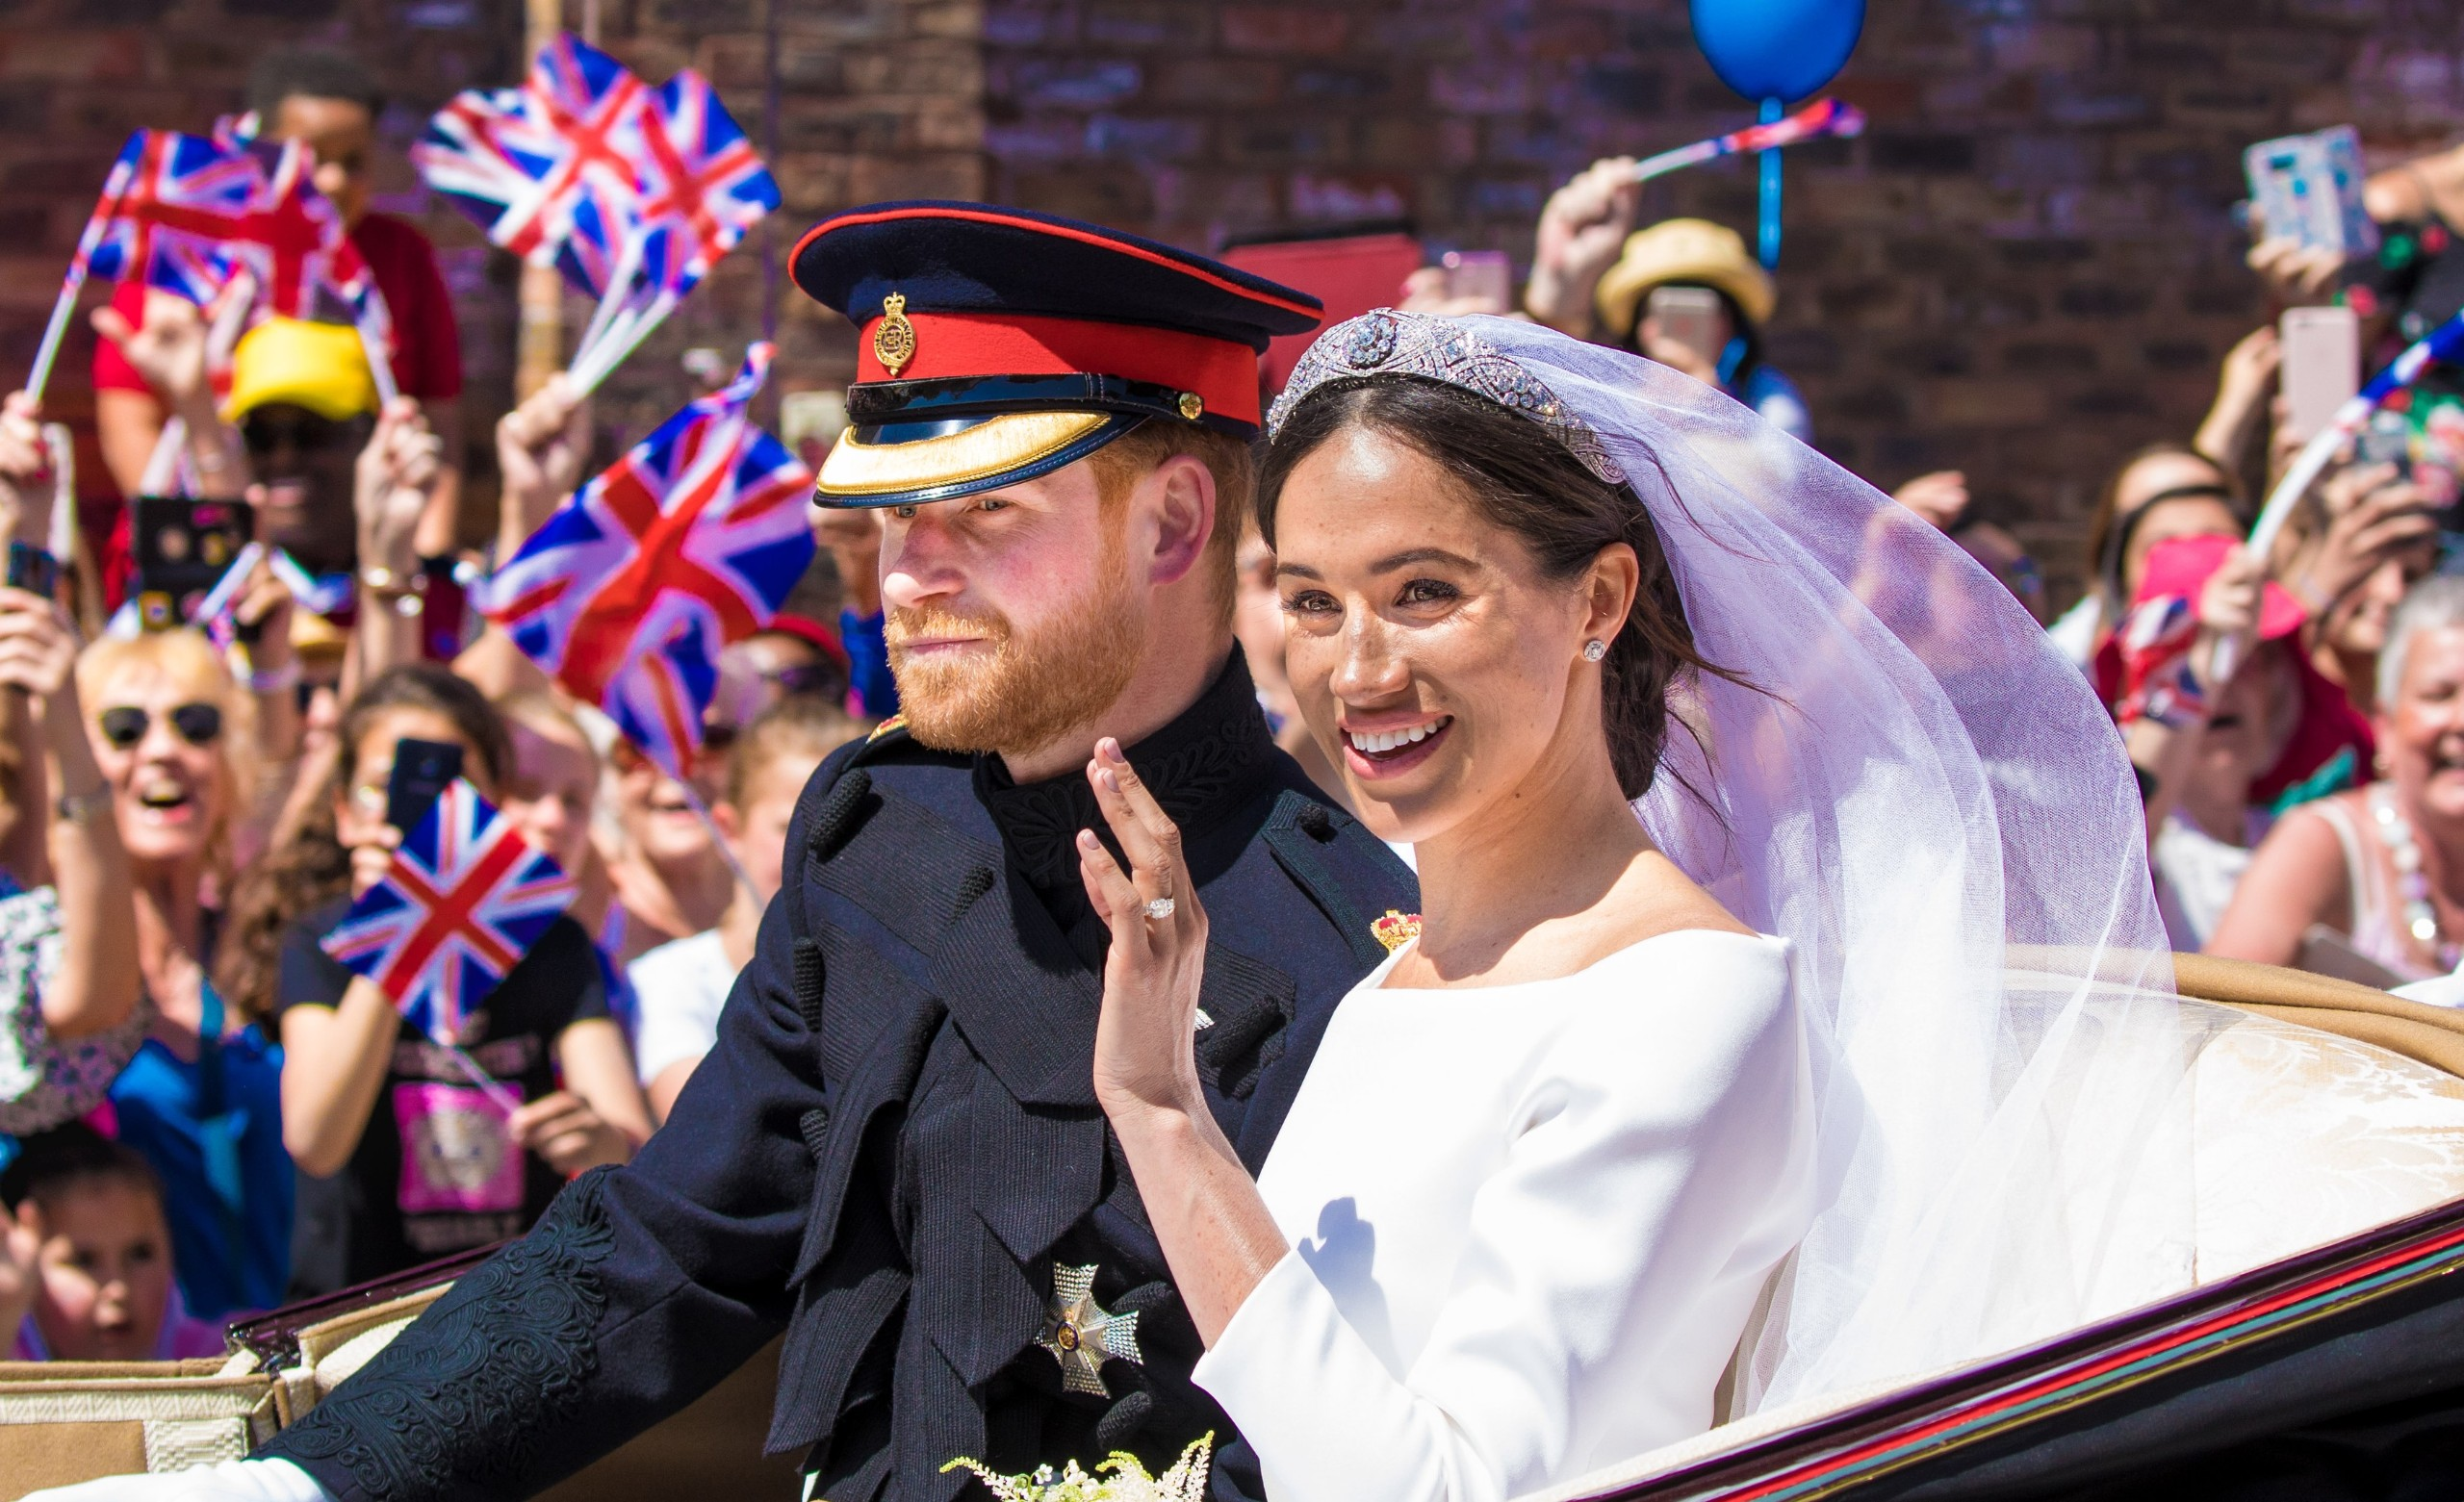 Prince Harry and Meghan Markle, Duke and Duchess of Sussex, during the Carriage Procession of their wedding in Windsor, Berkshire, UK.,Image: 372373666, License: Rights-managed, Restrictions: *** World Rights Except The Netherlands and Germany ***, Model Release: no, Credit line: DPPA / ddp USA / Profimedia